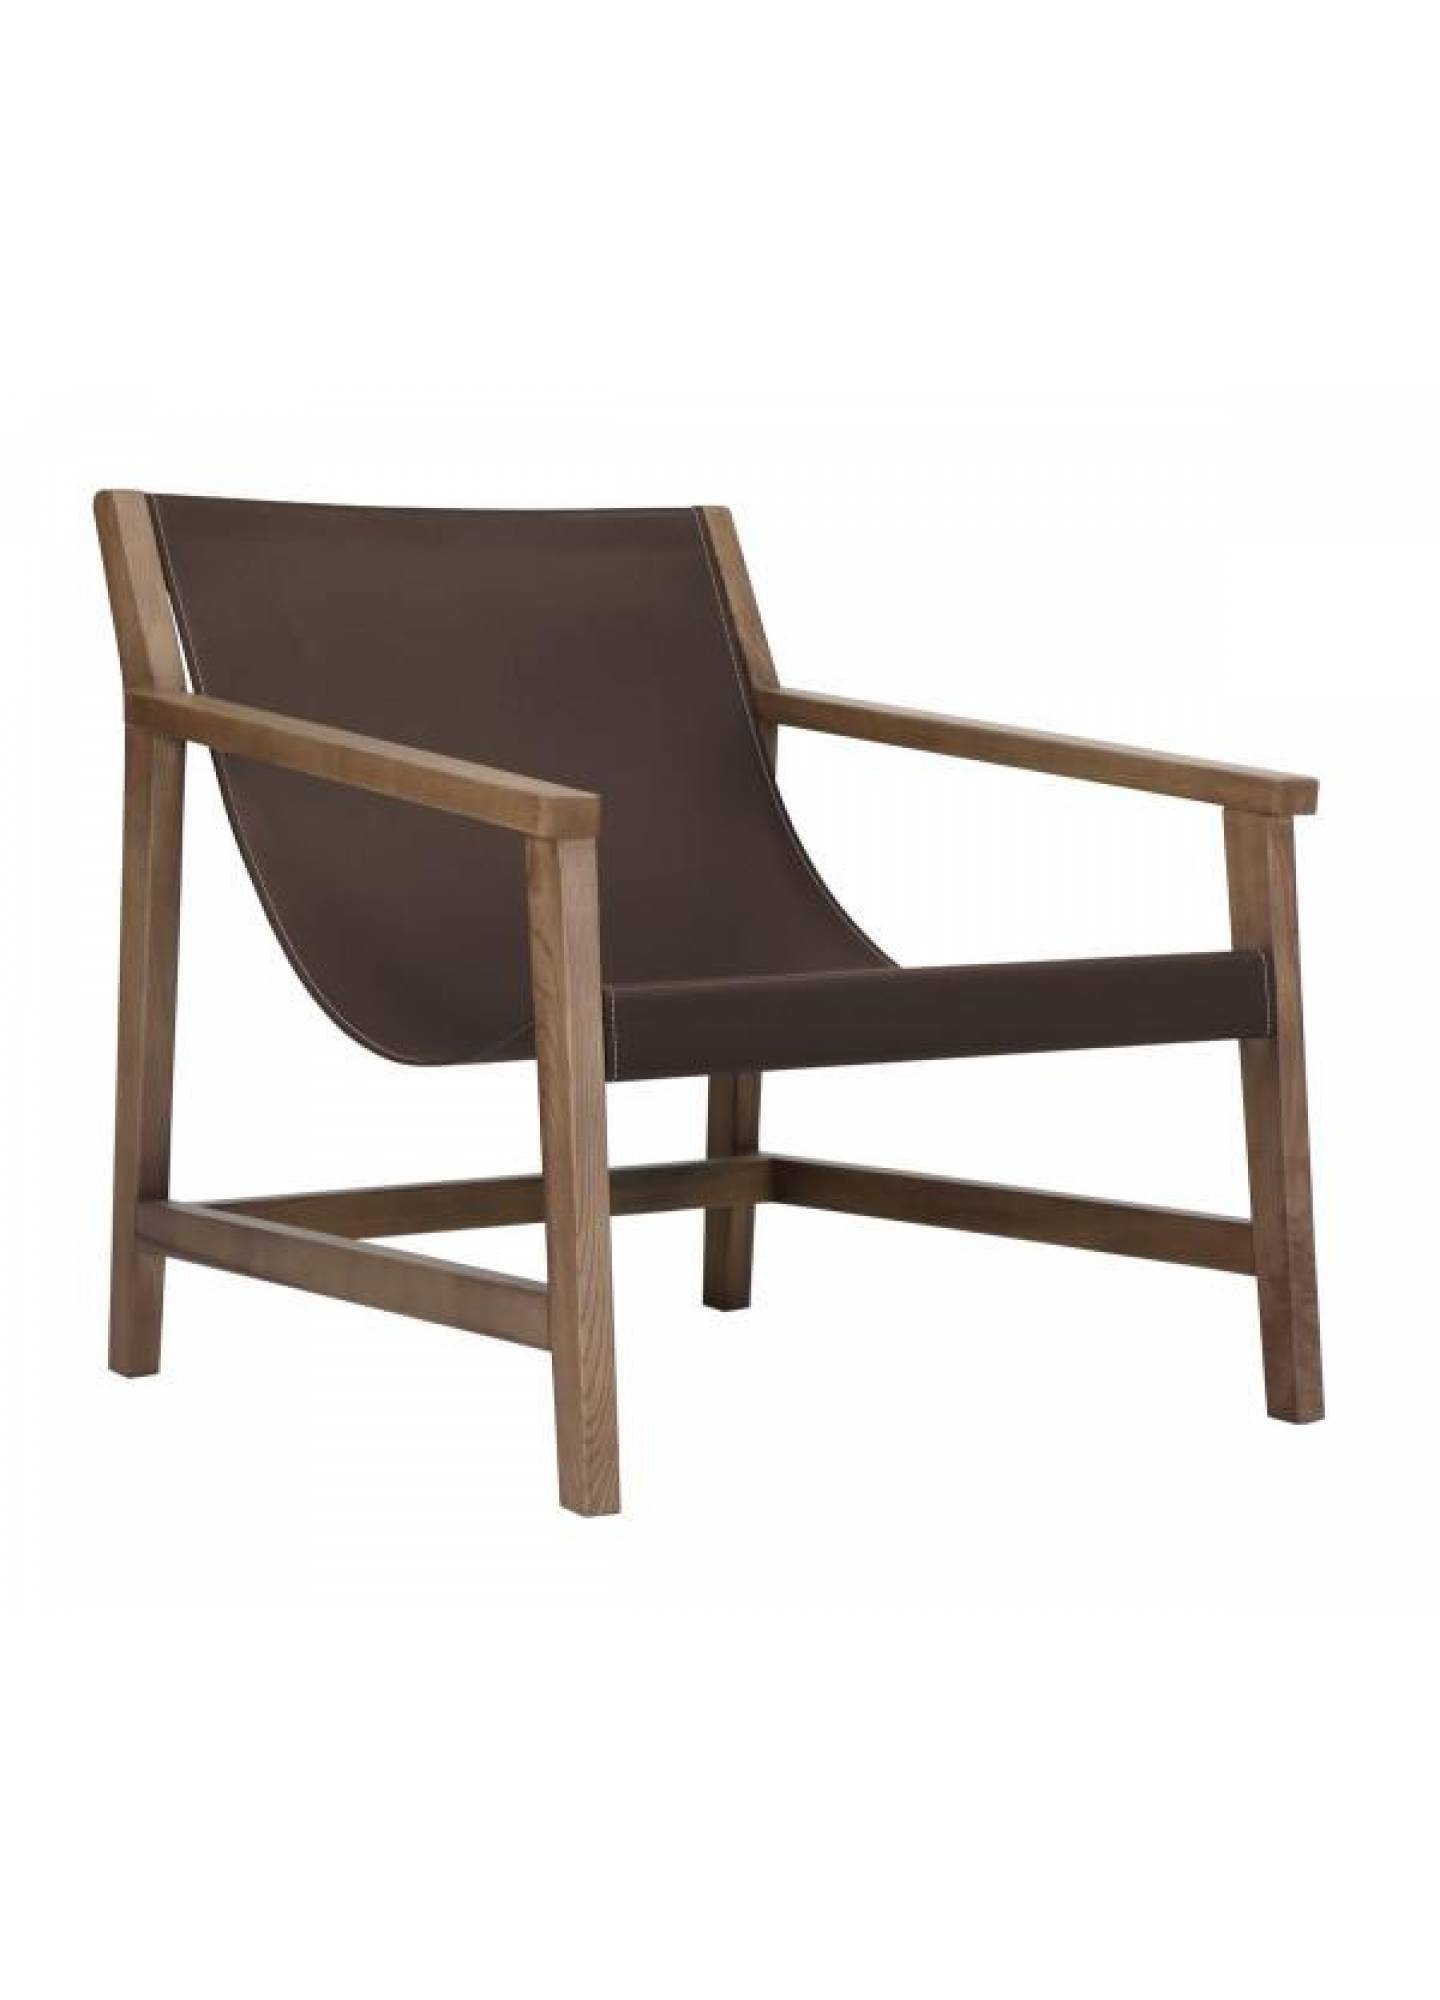 SIENA LEATHER CHAIR